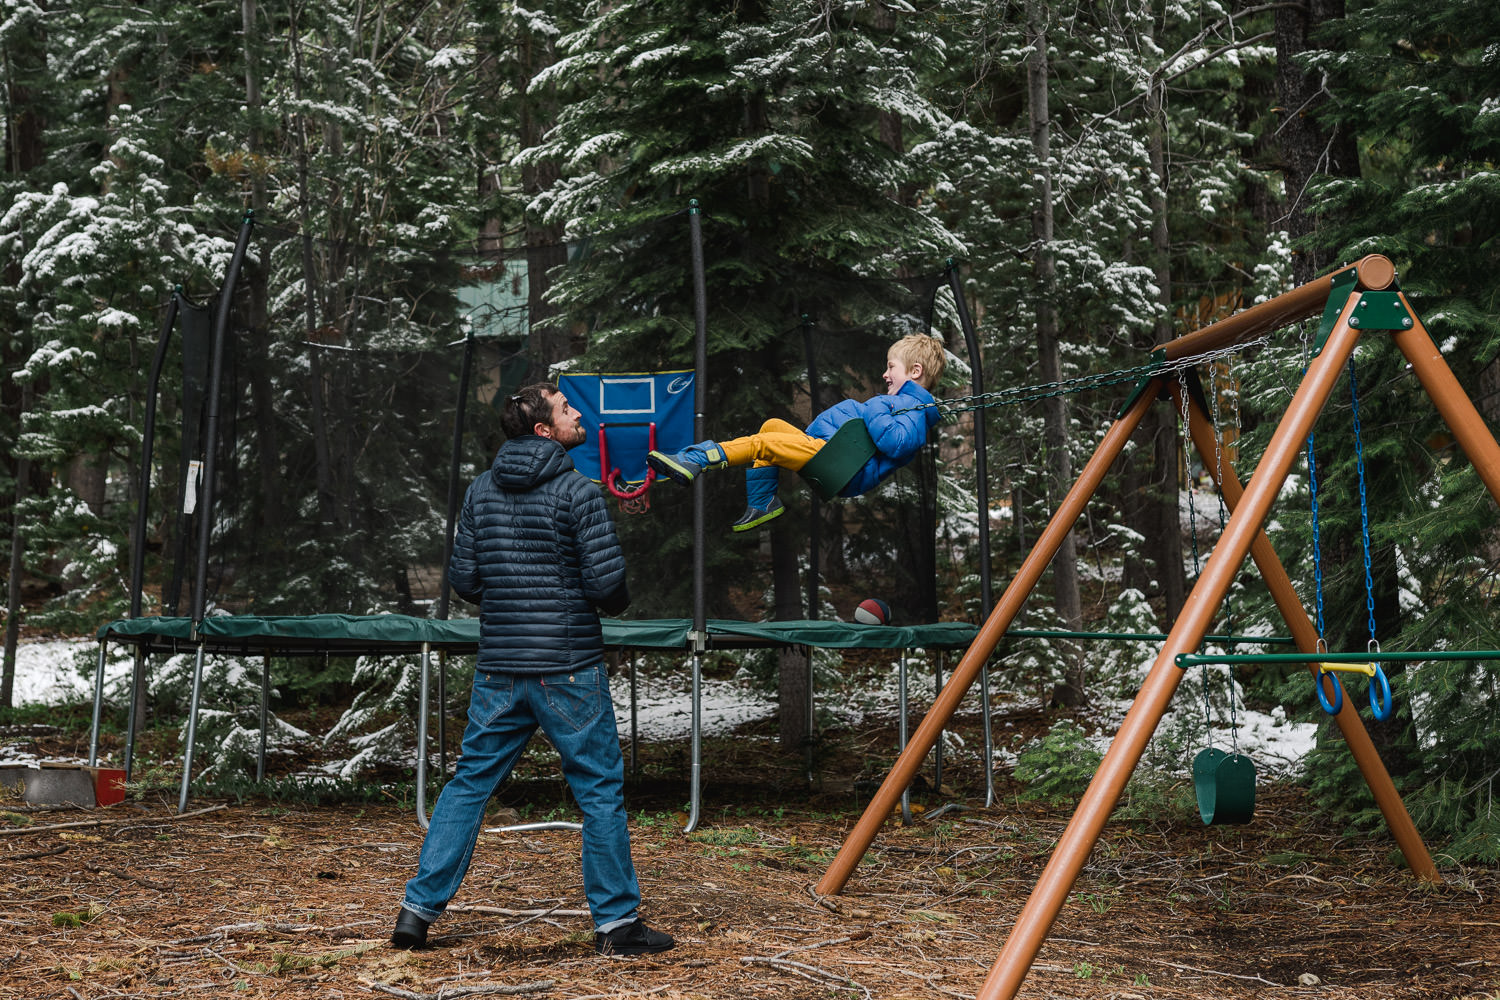 A little boy swings on a swing next to his uncle.